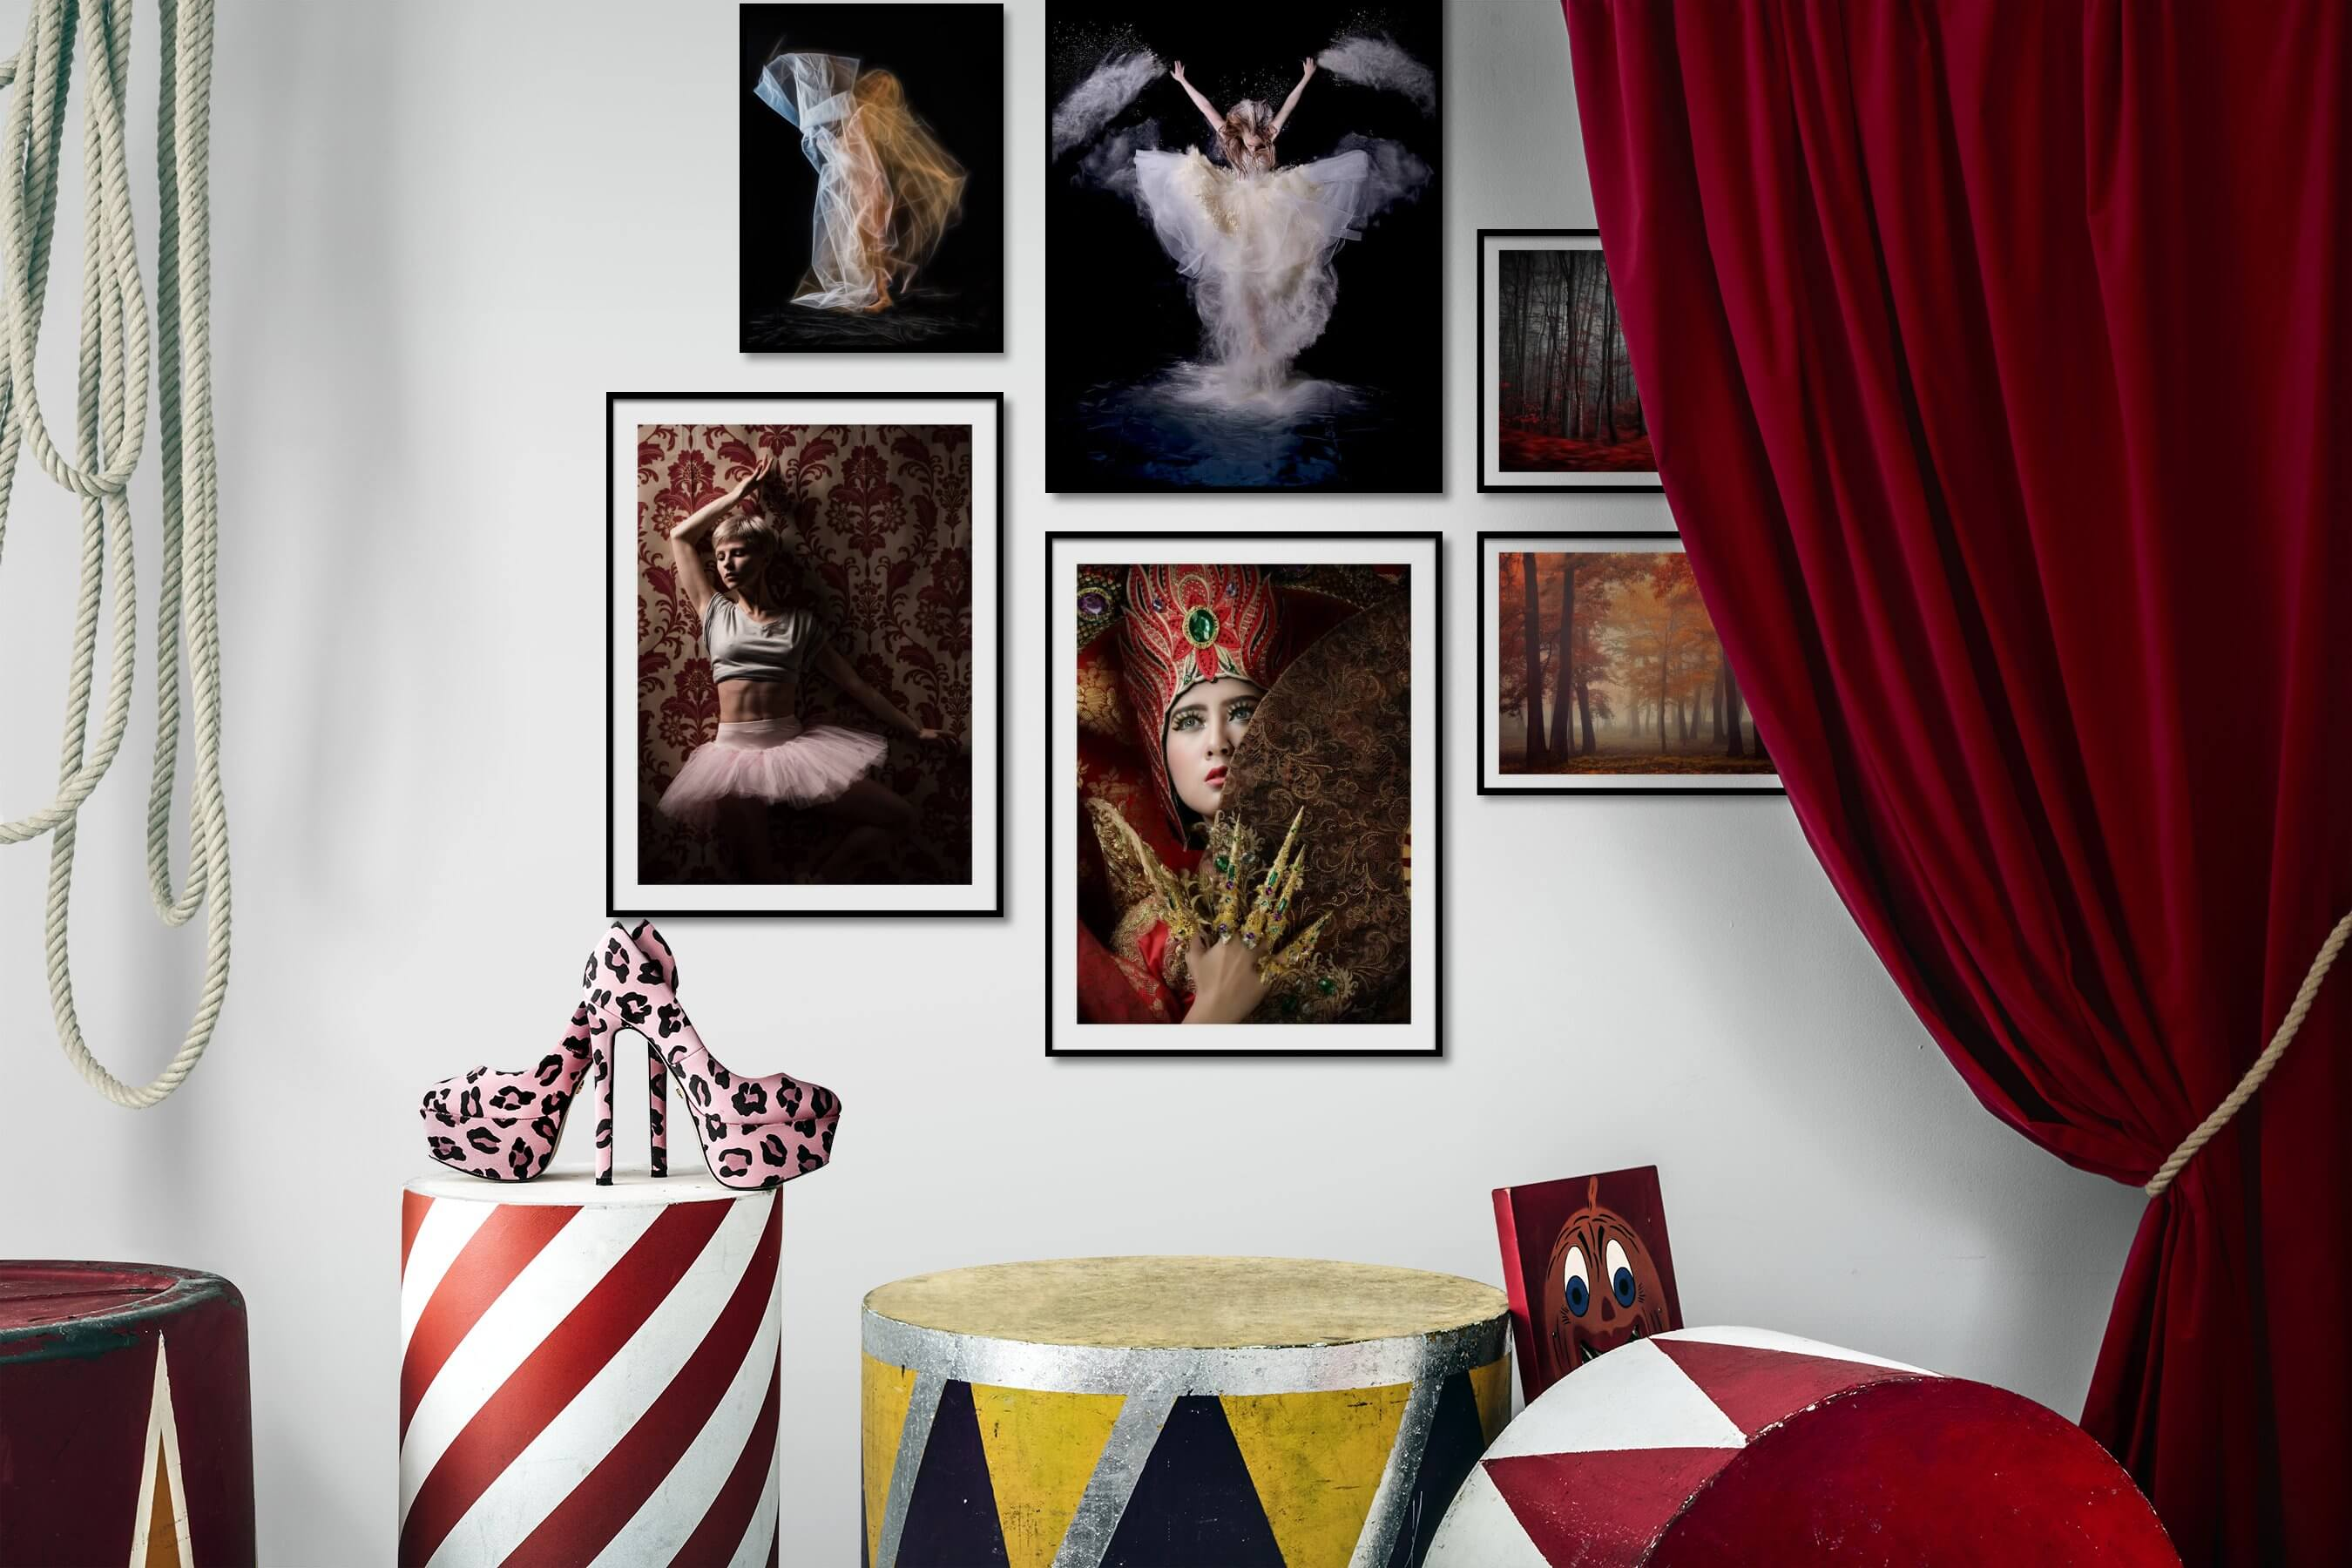 Gallery wall idea with six framed pictures arranged on a wall depicting Artsy, Dark Tones, Fashion & Beauty, and Nature